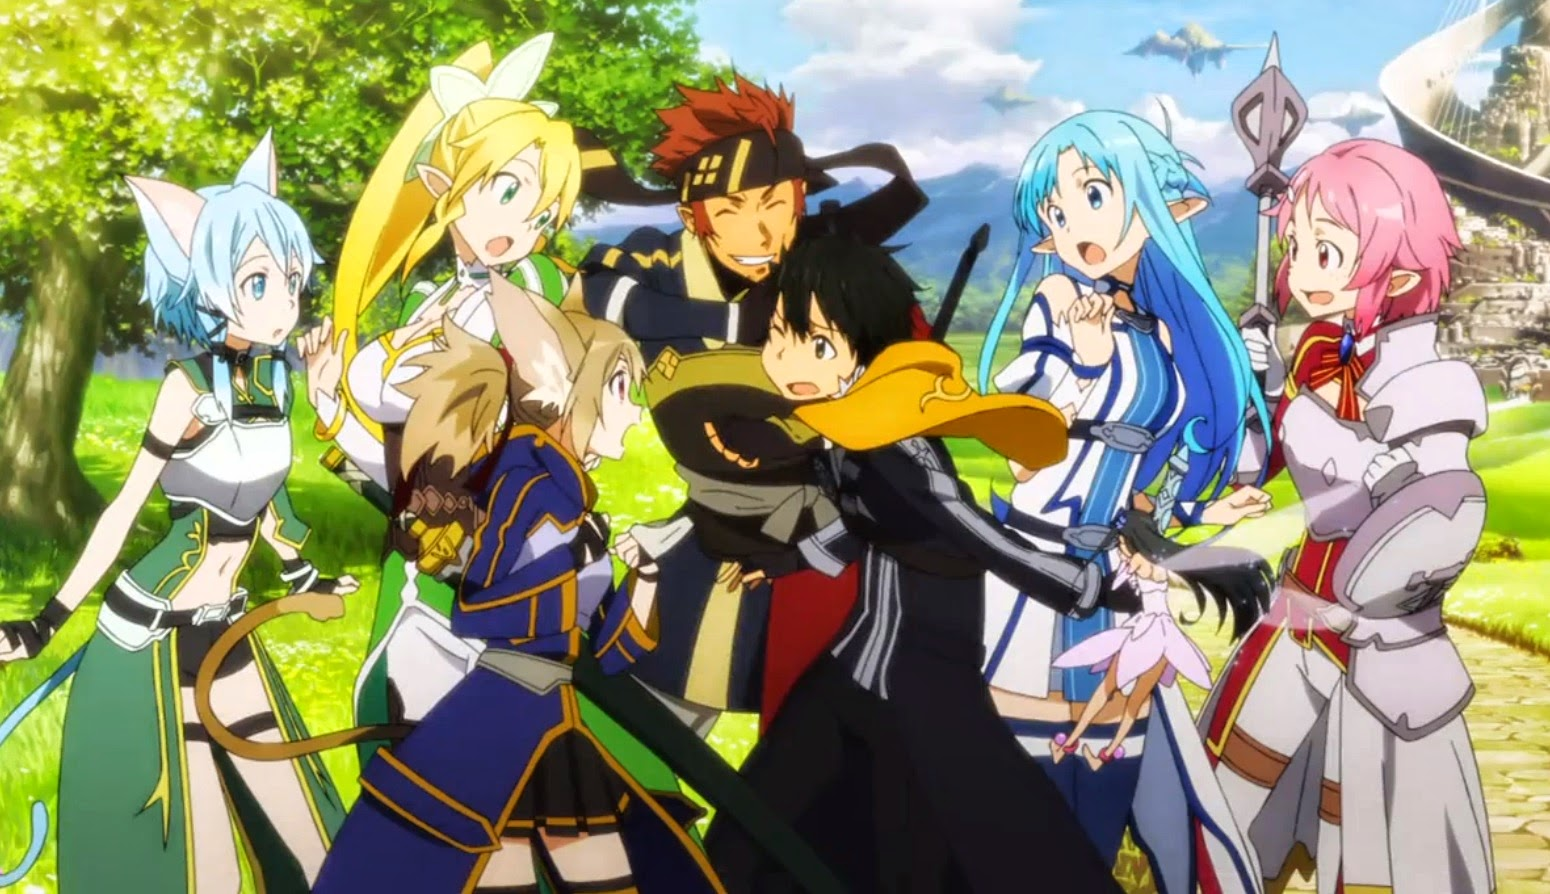 Free Download Sao Ii Group Wallpaper 1550x894 For Your Desktop